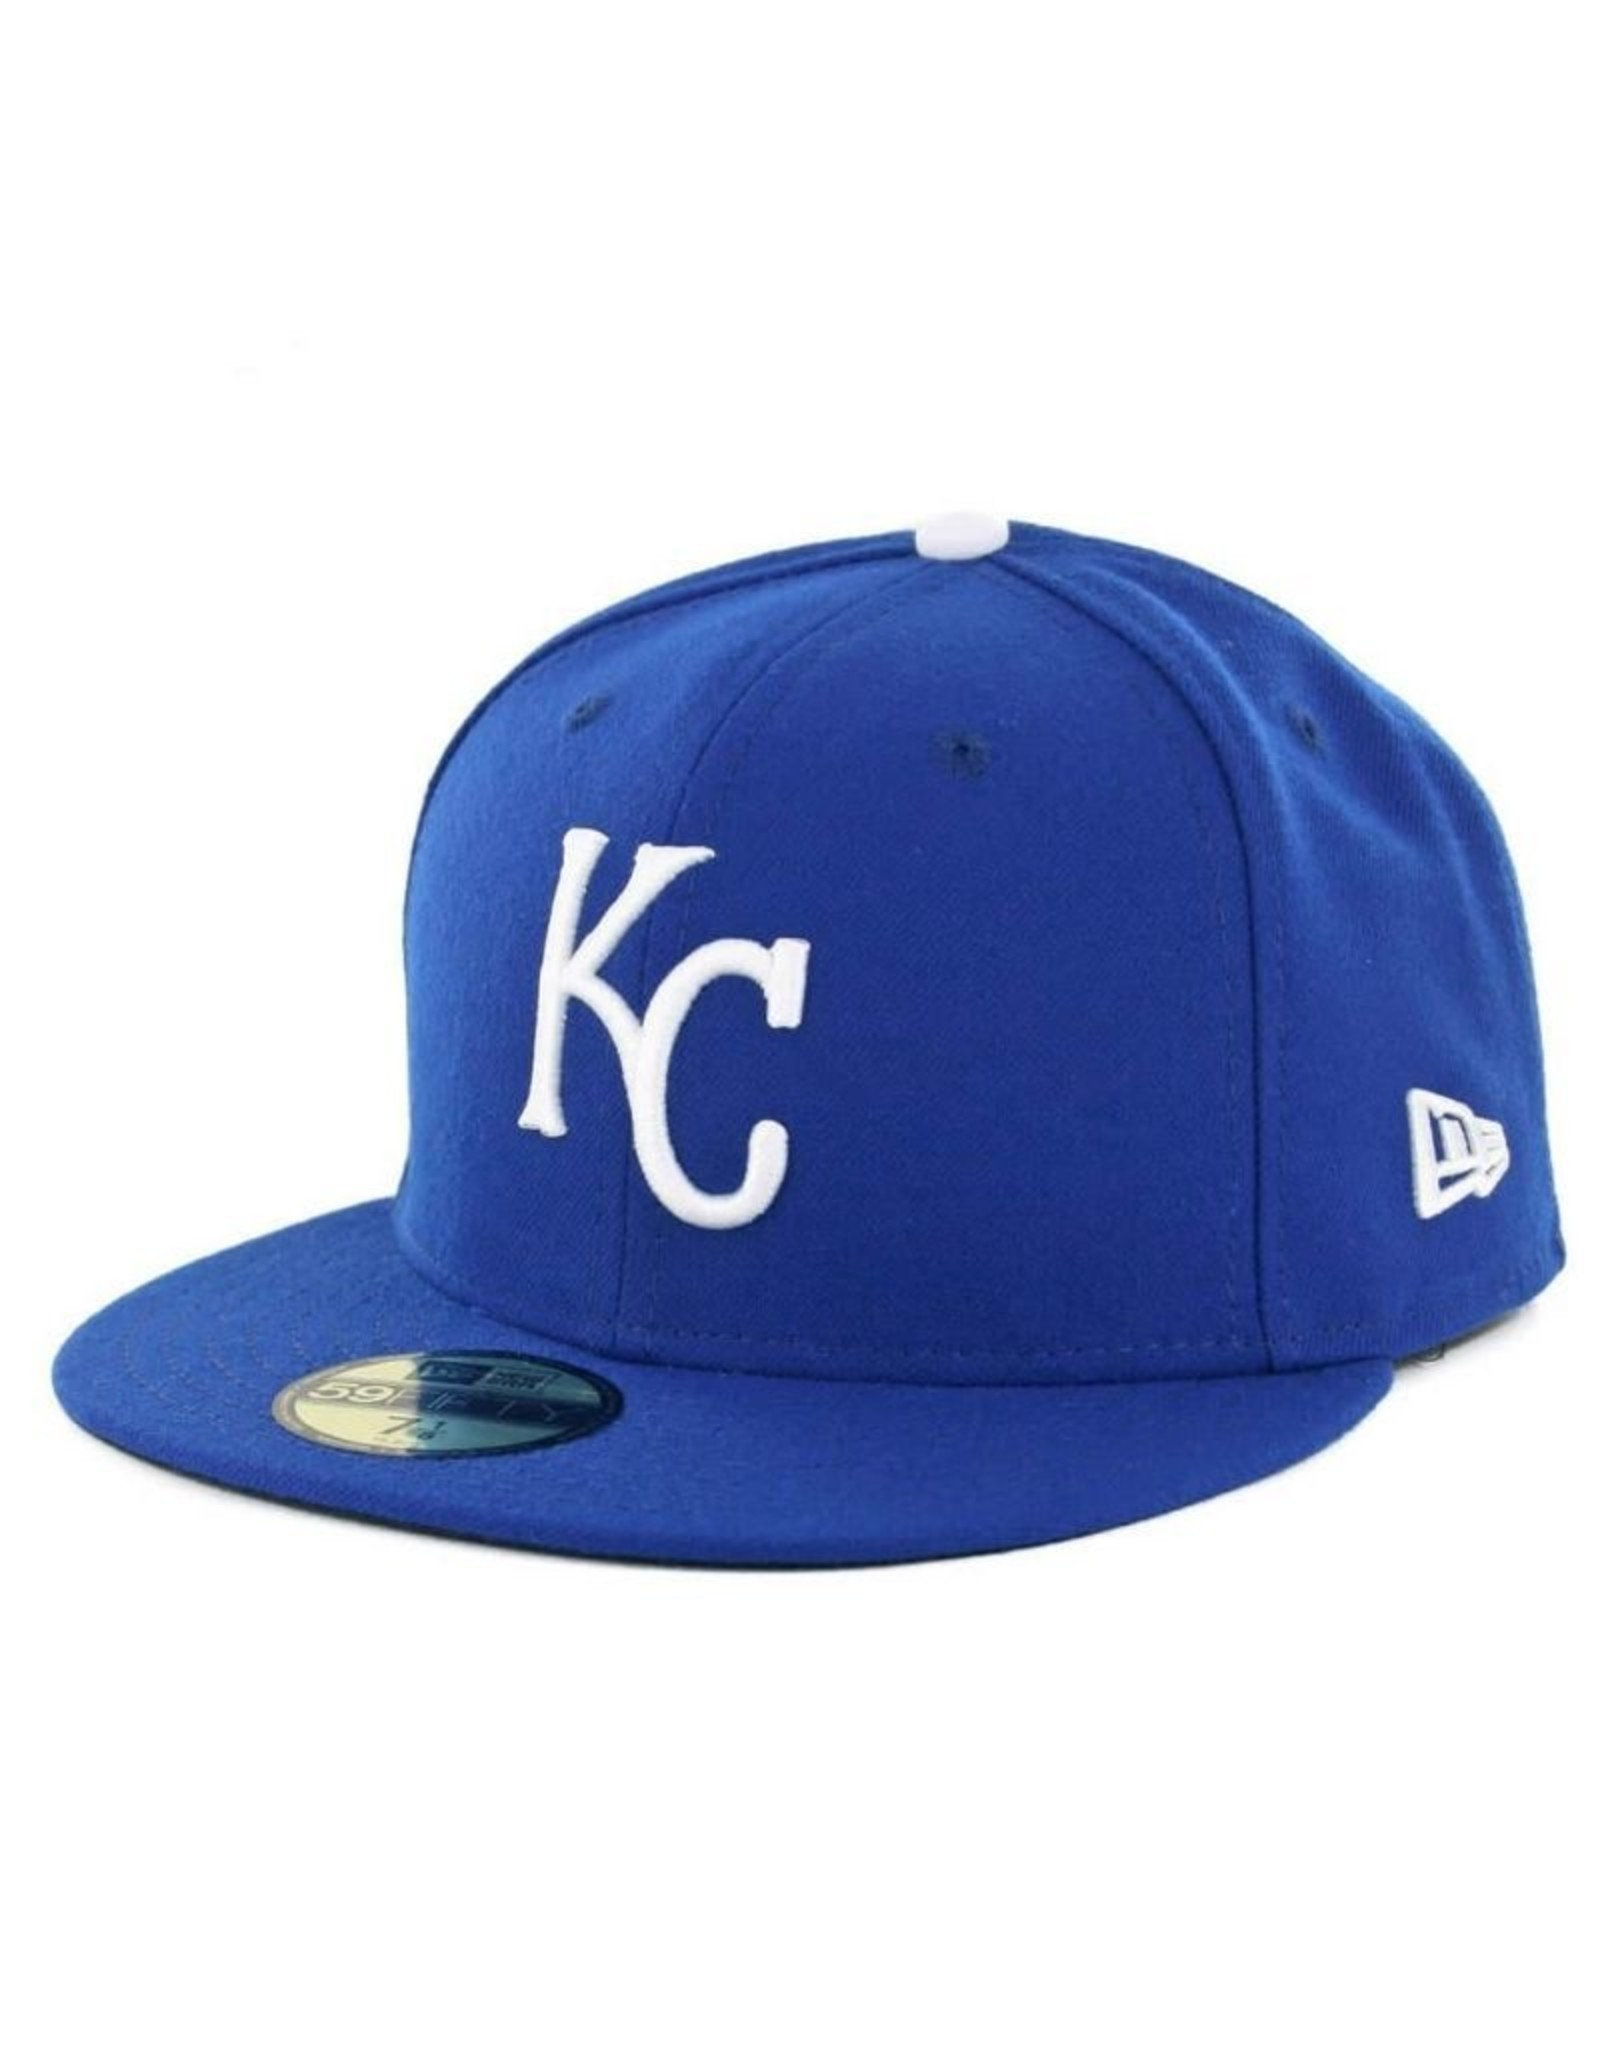 New Era On-Field Authentic 59FIFTY Home Hat Kansas City Royals Royal/White